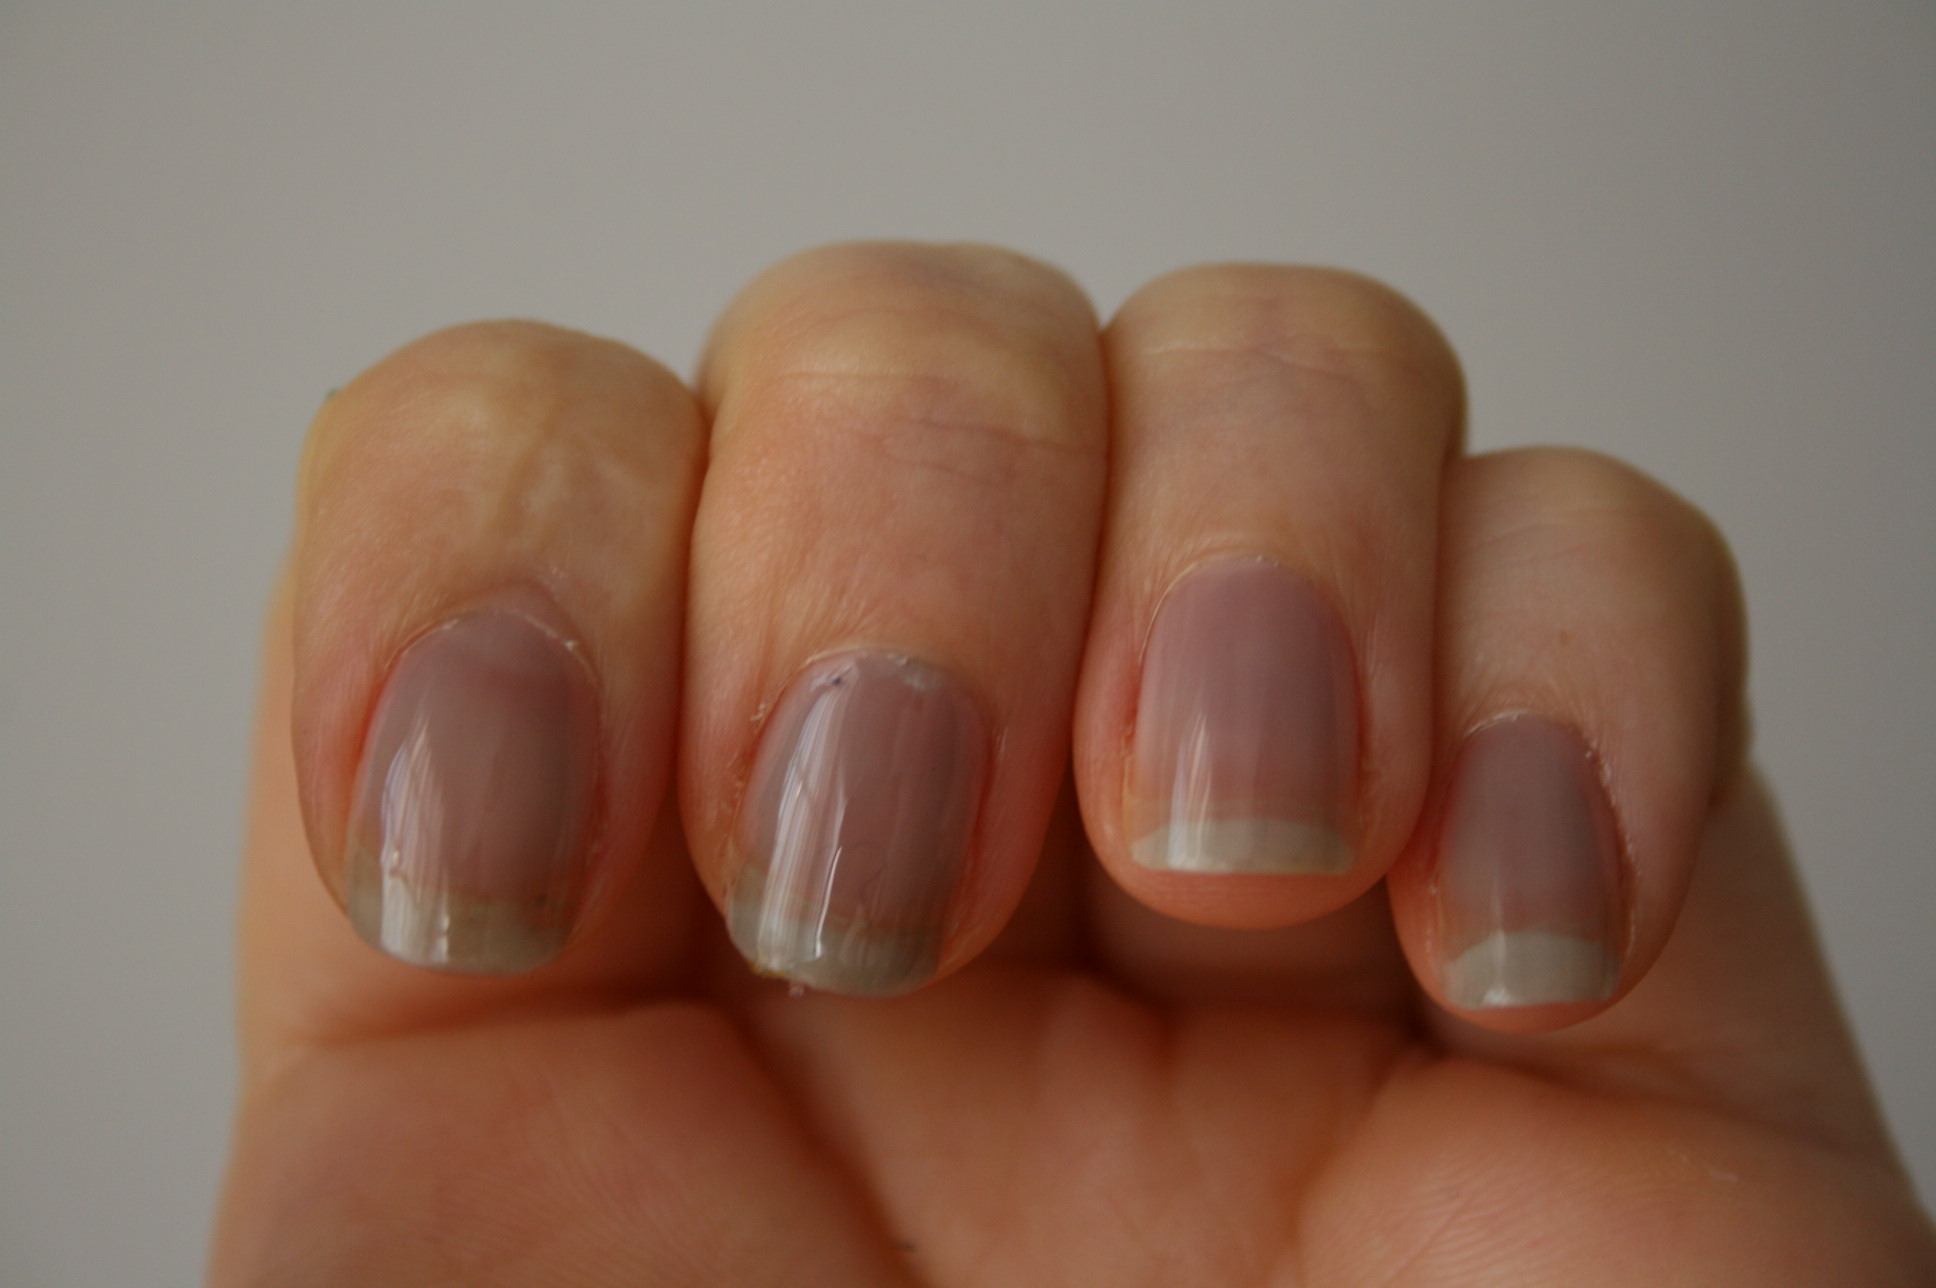 Check Your Nails For These 8 Signs Of Health Issues